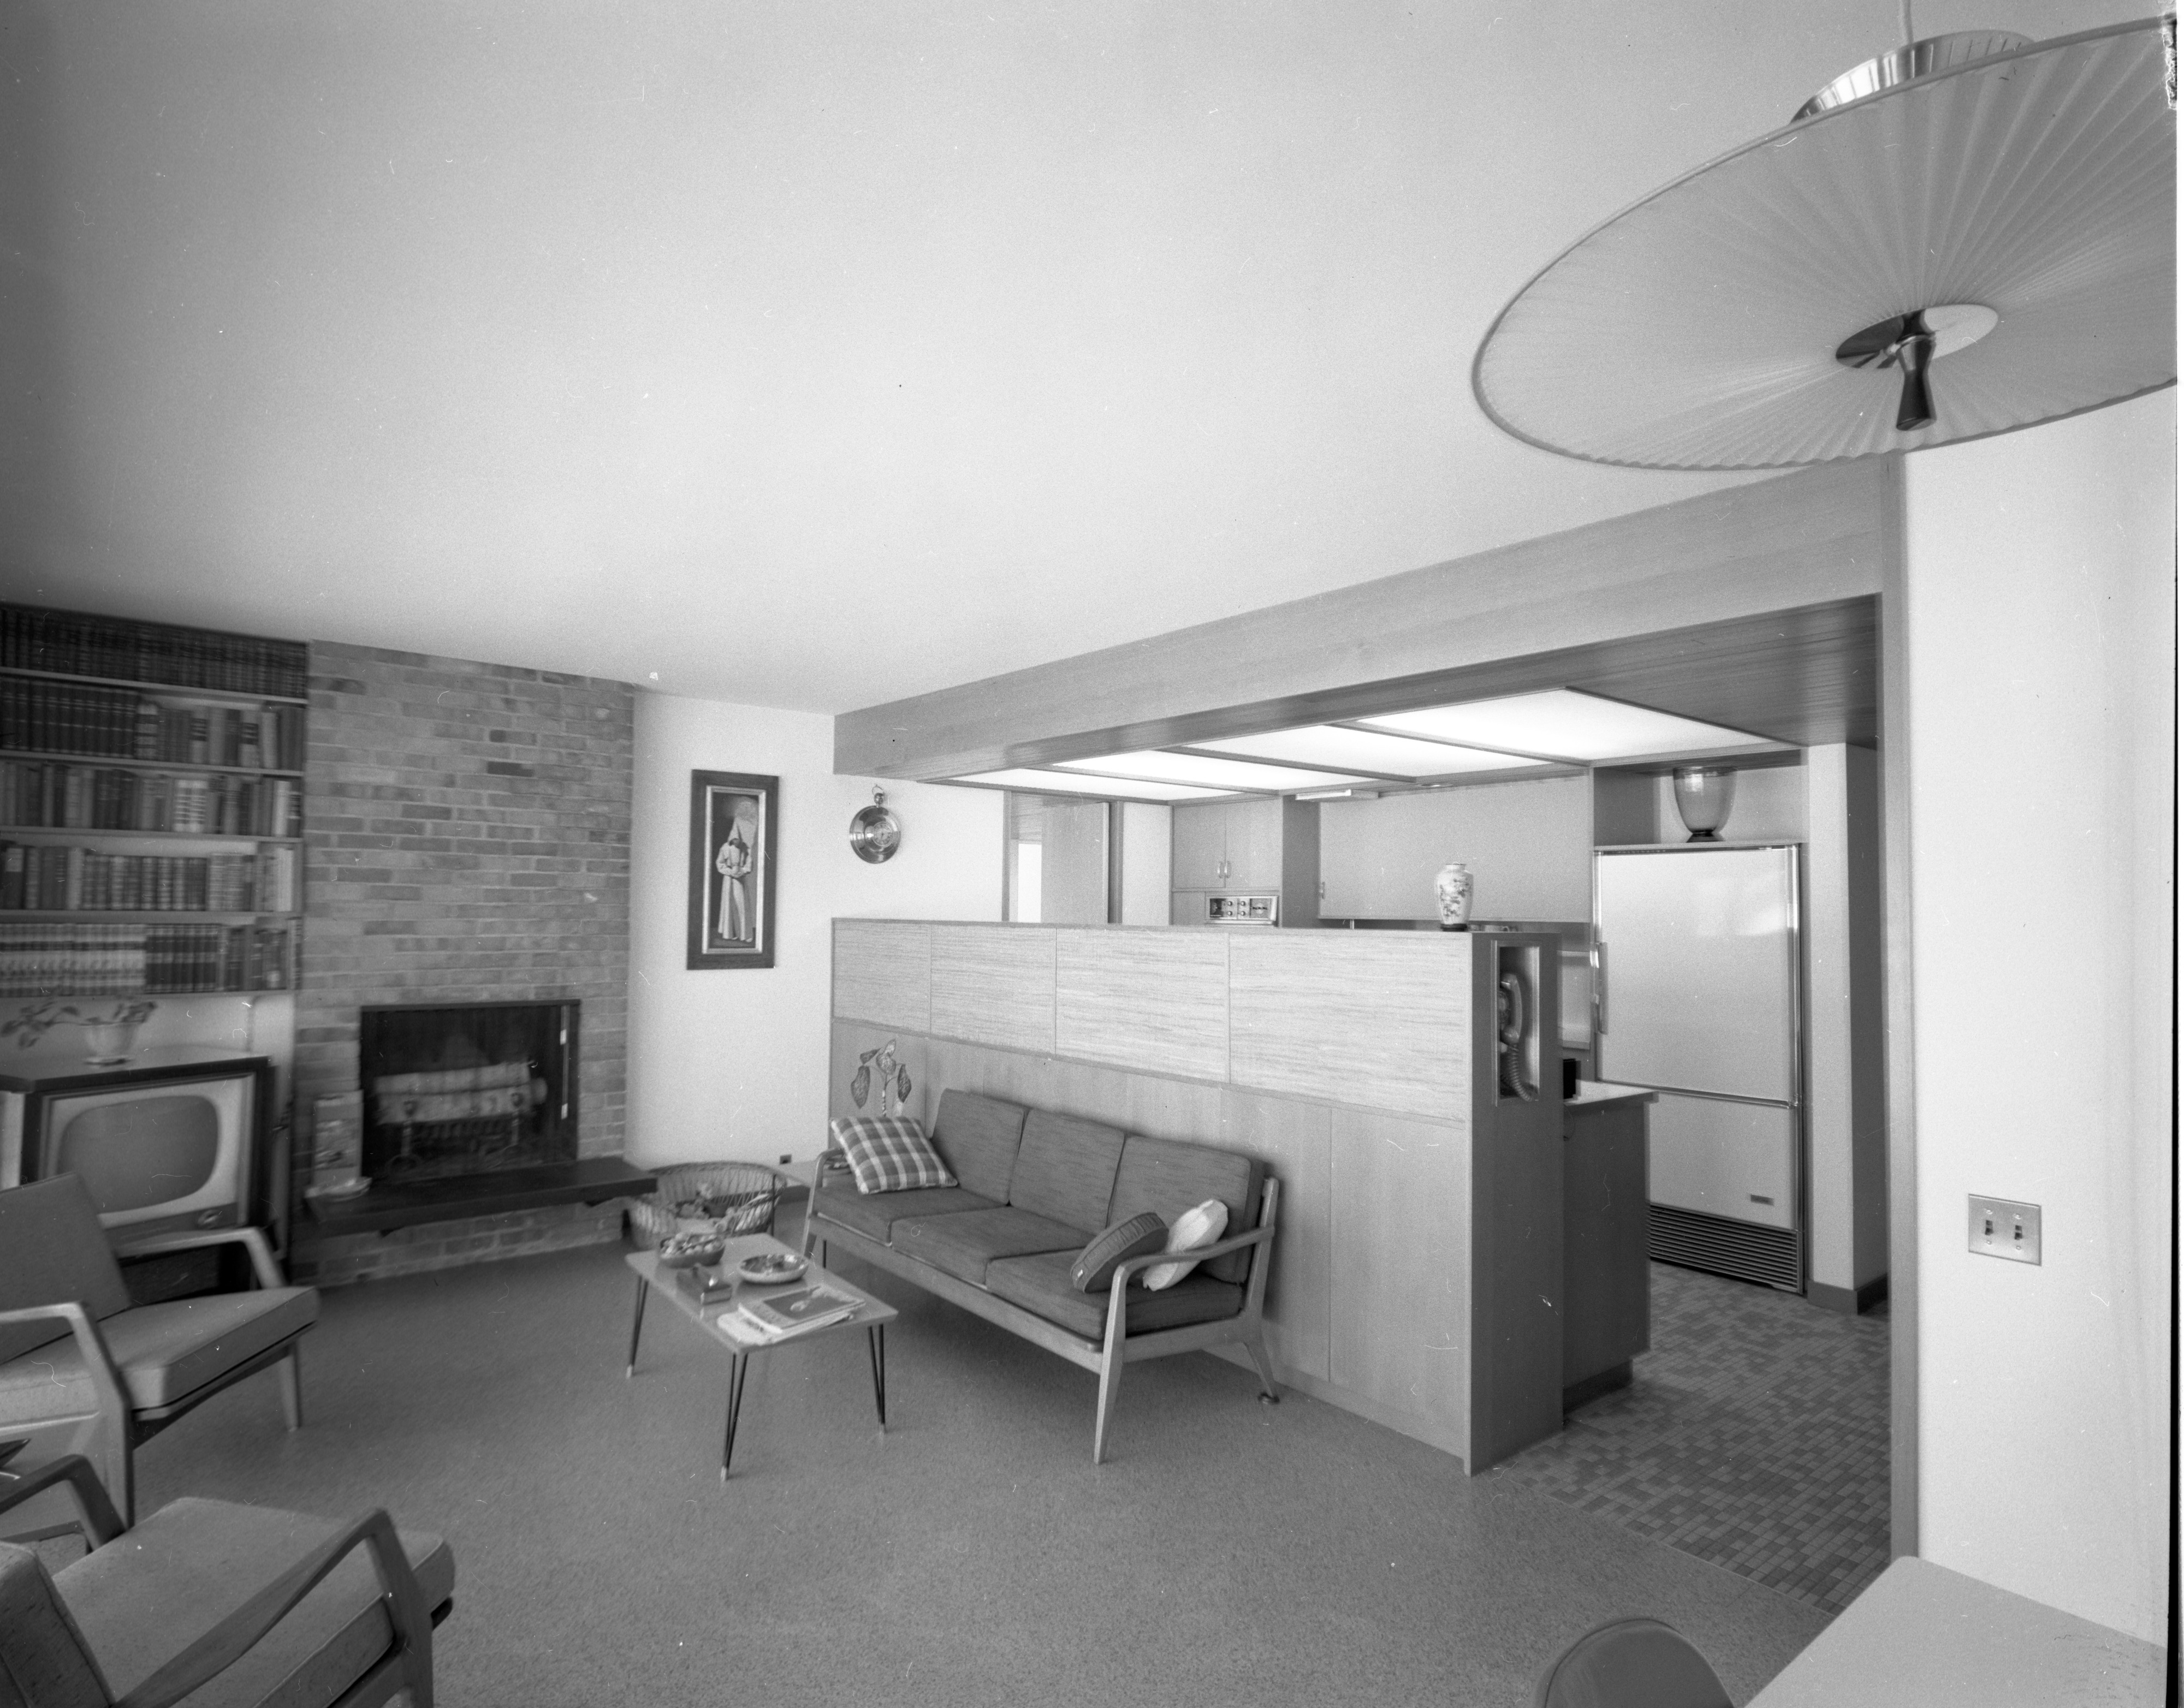 Family Room-Kitchen of Botch Home on Chestnut Rd , March 1959 image